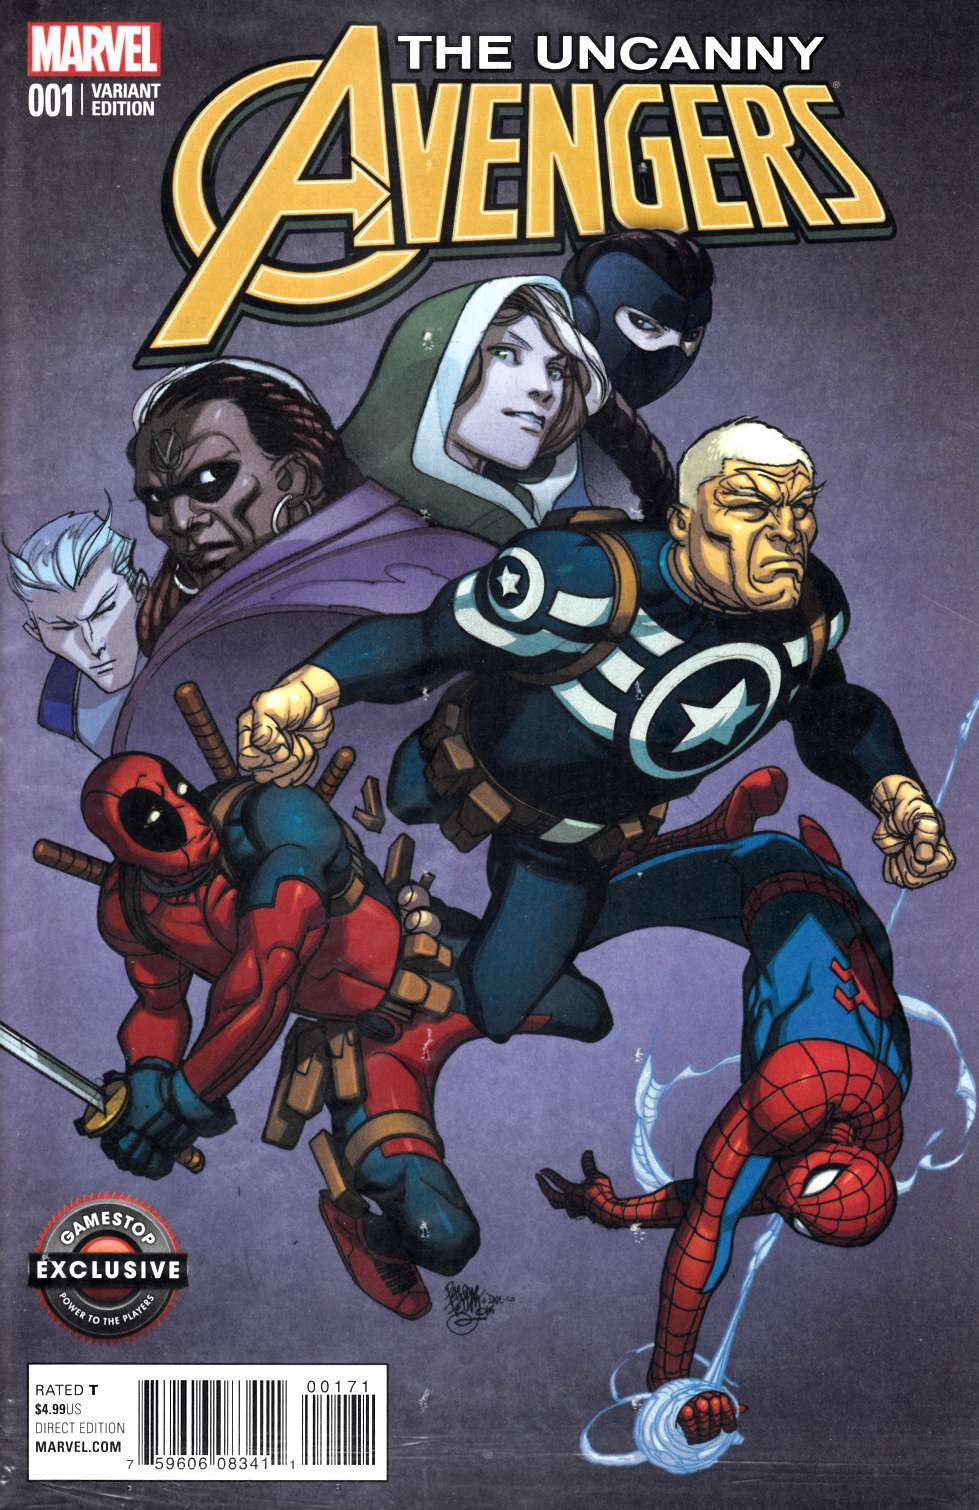 Uncanny Avengers 1 Gamestop Exclusive Cover Marvel Comic View Enlarged Image